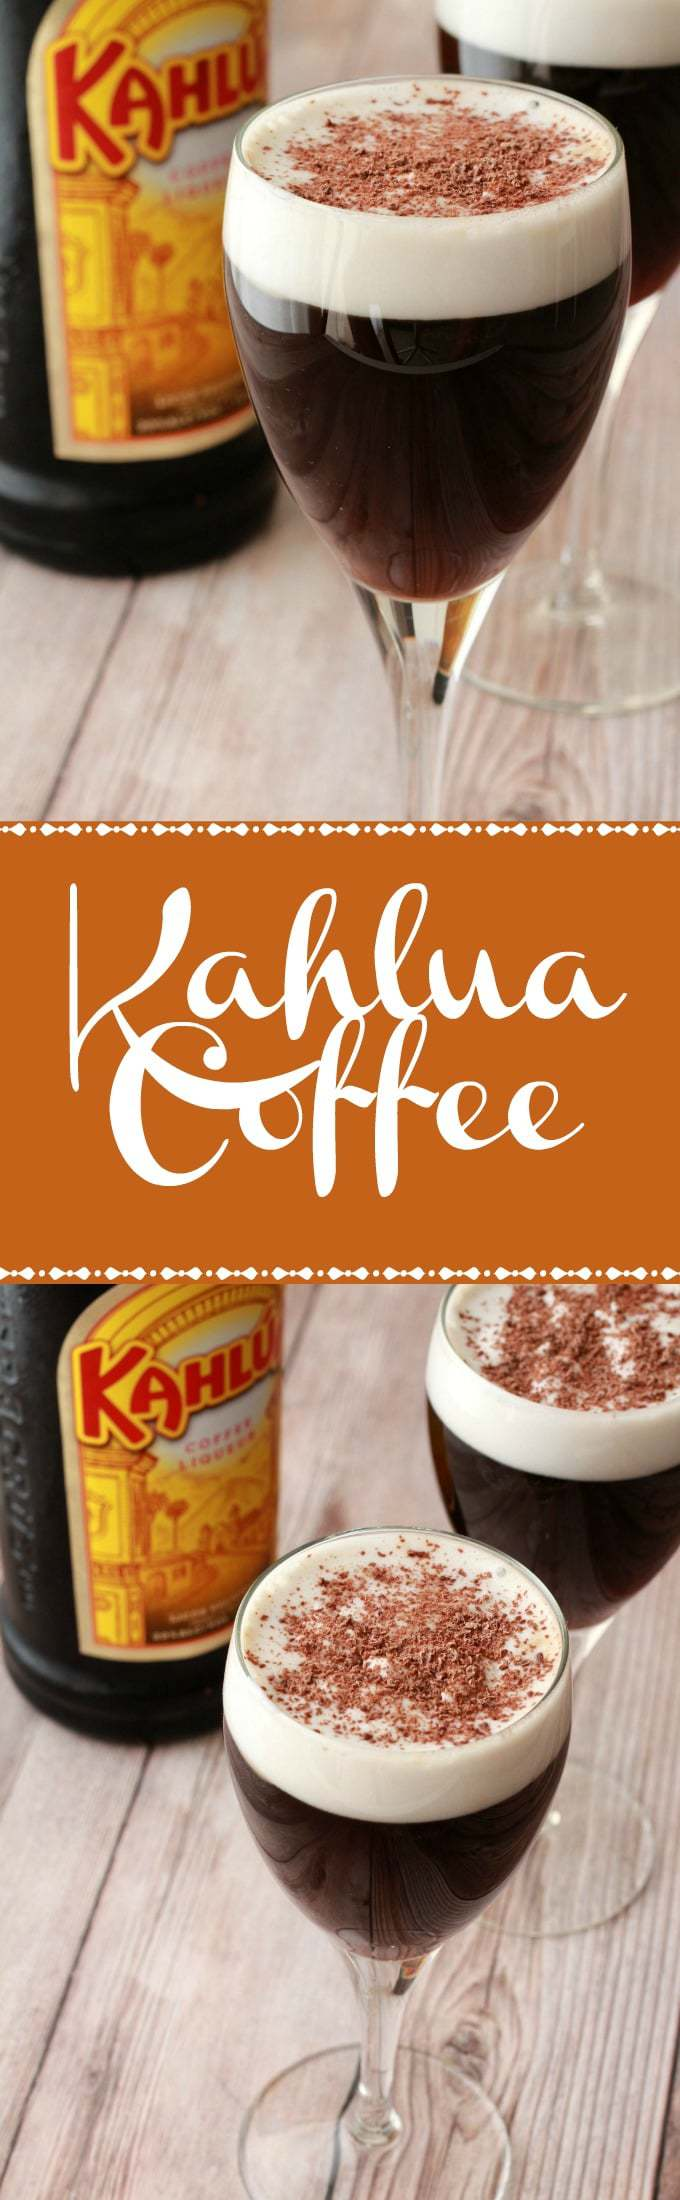 Kahlua coffee is the perfect after-dinner drink. Just like an Irish coffee but with kahlua instead of whiskey for an all-in-one dessert, coffee & cocktail. Vegan | Vegan Drinks | Vegan Recipes | lovingitvegan.com